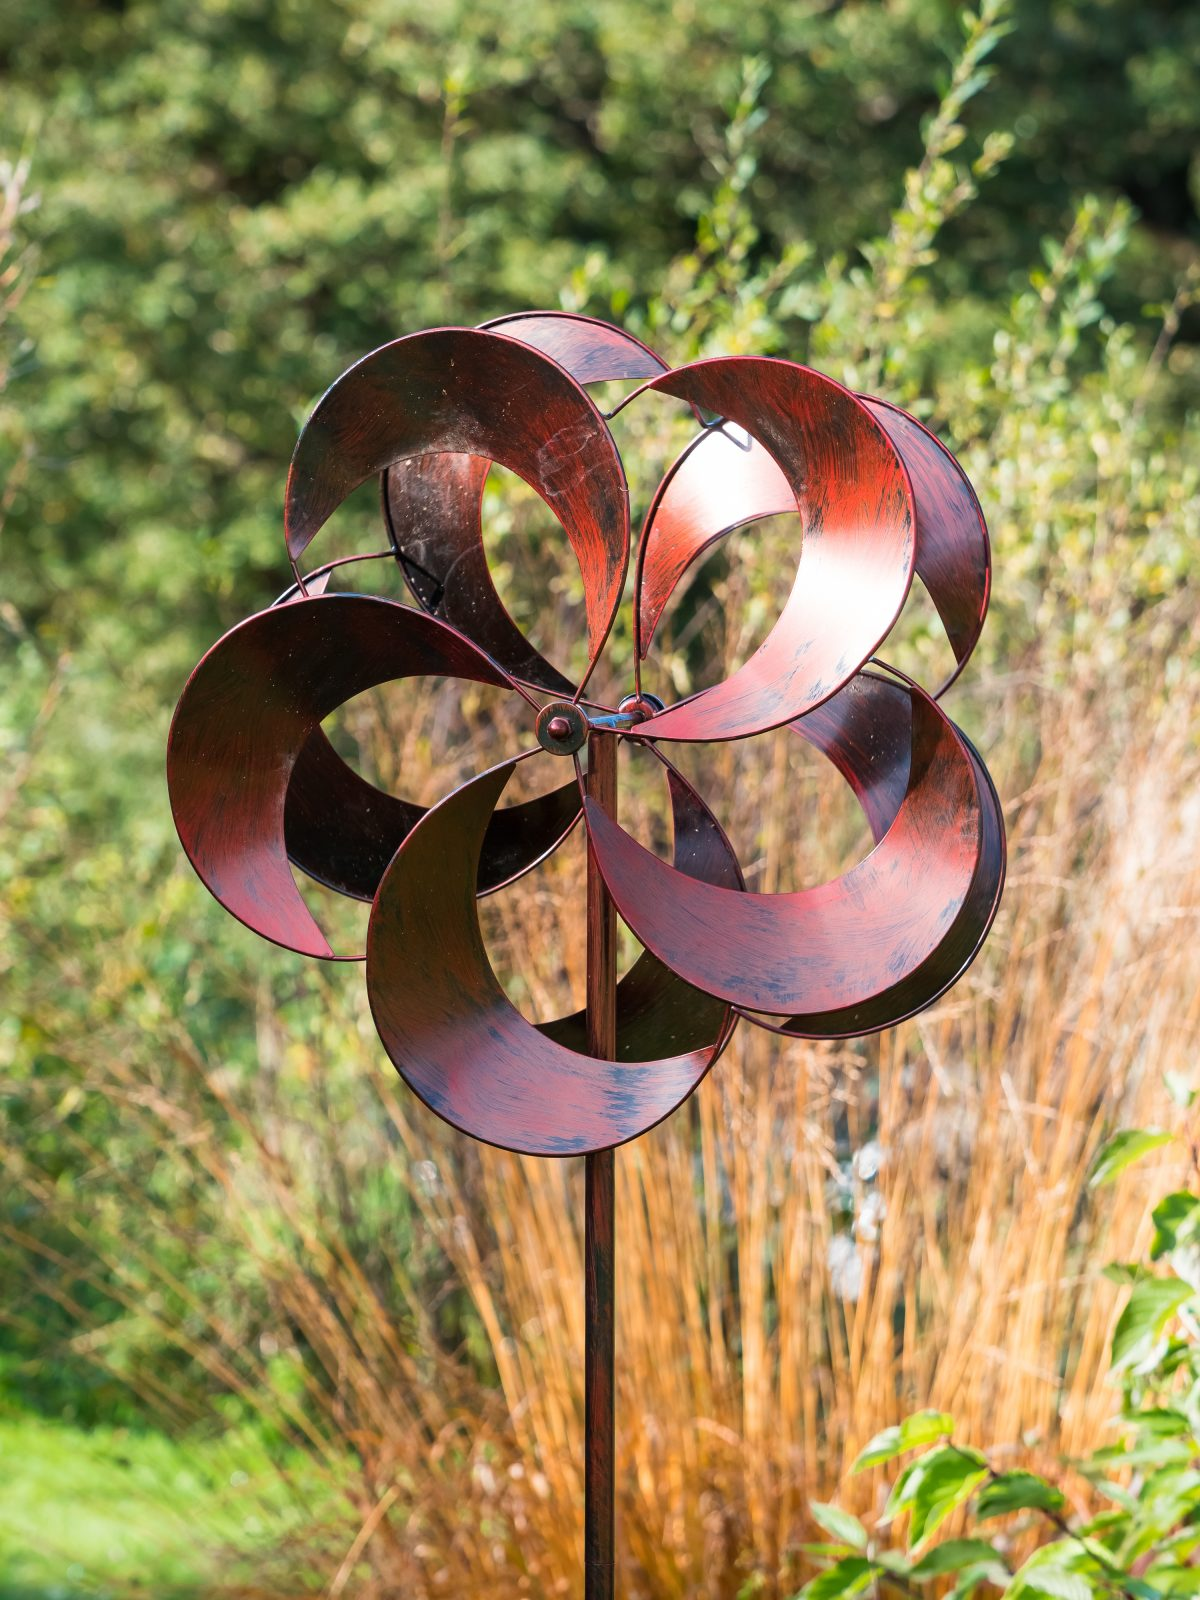 SP435 Bladesbury Brurnished Bronze Garden Wind Sculpture | Avant Garden Guernsey